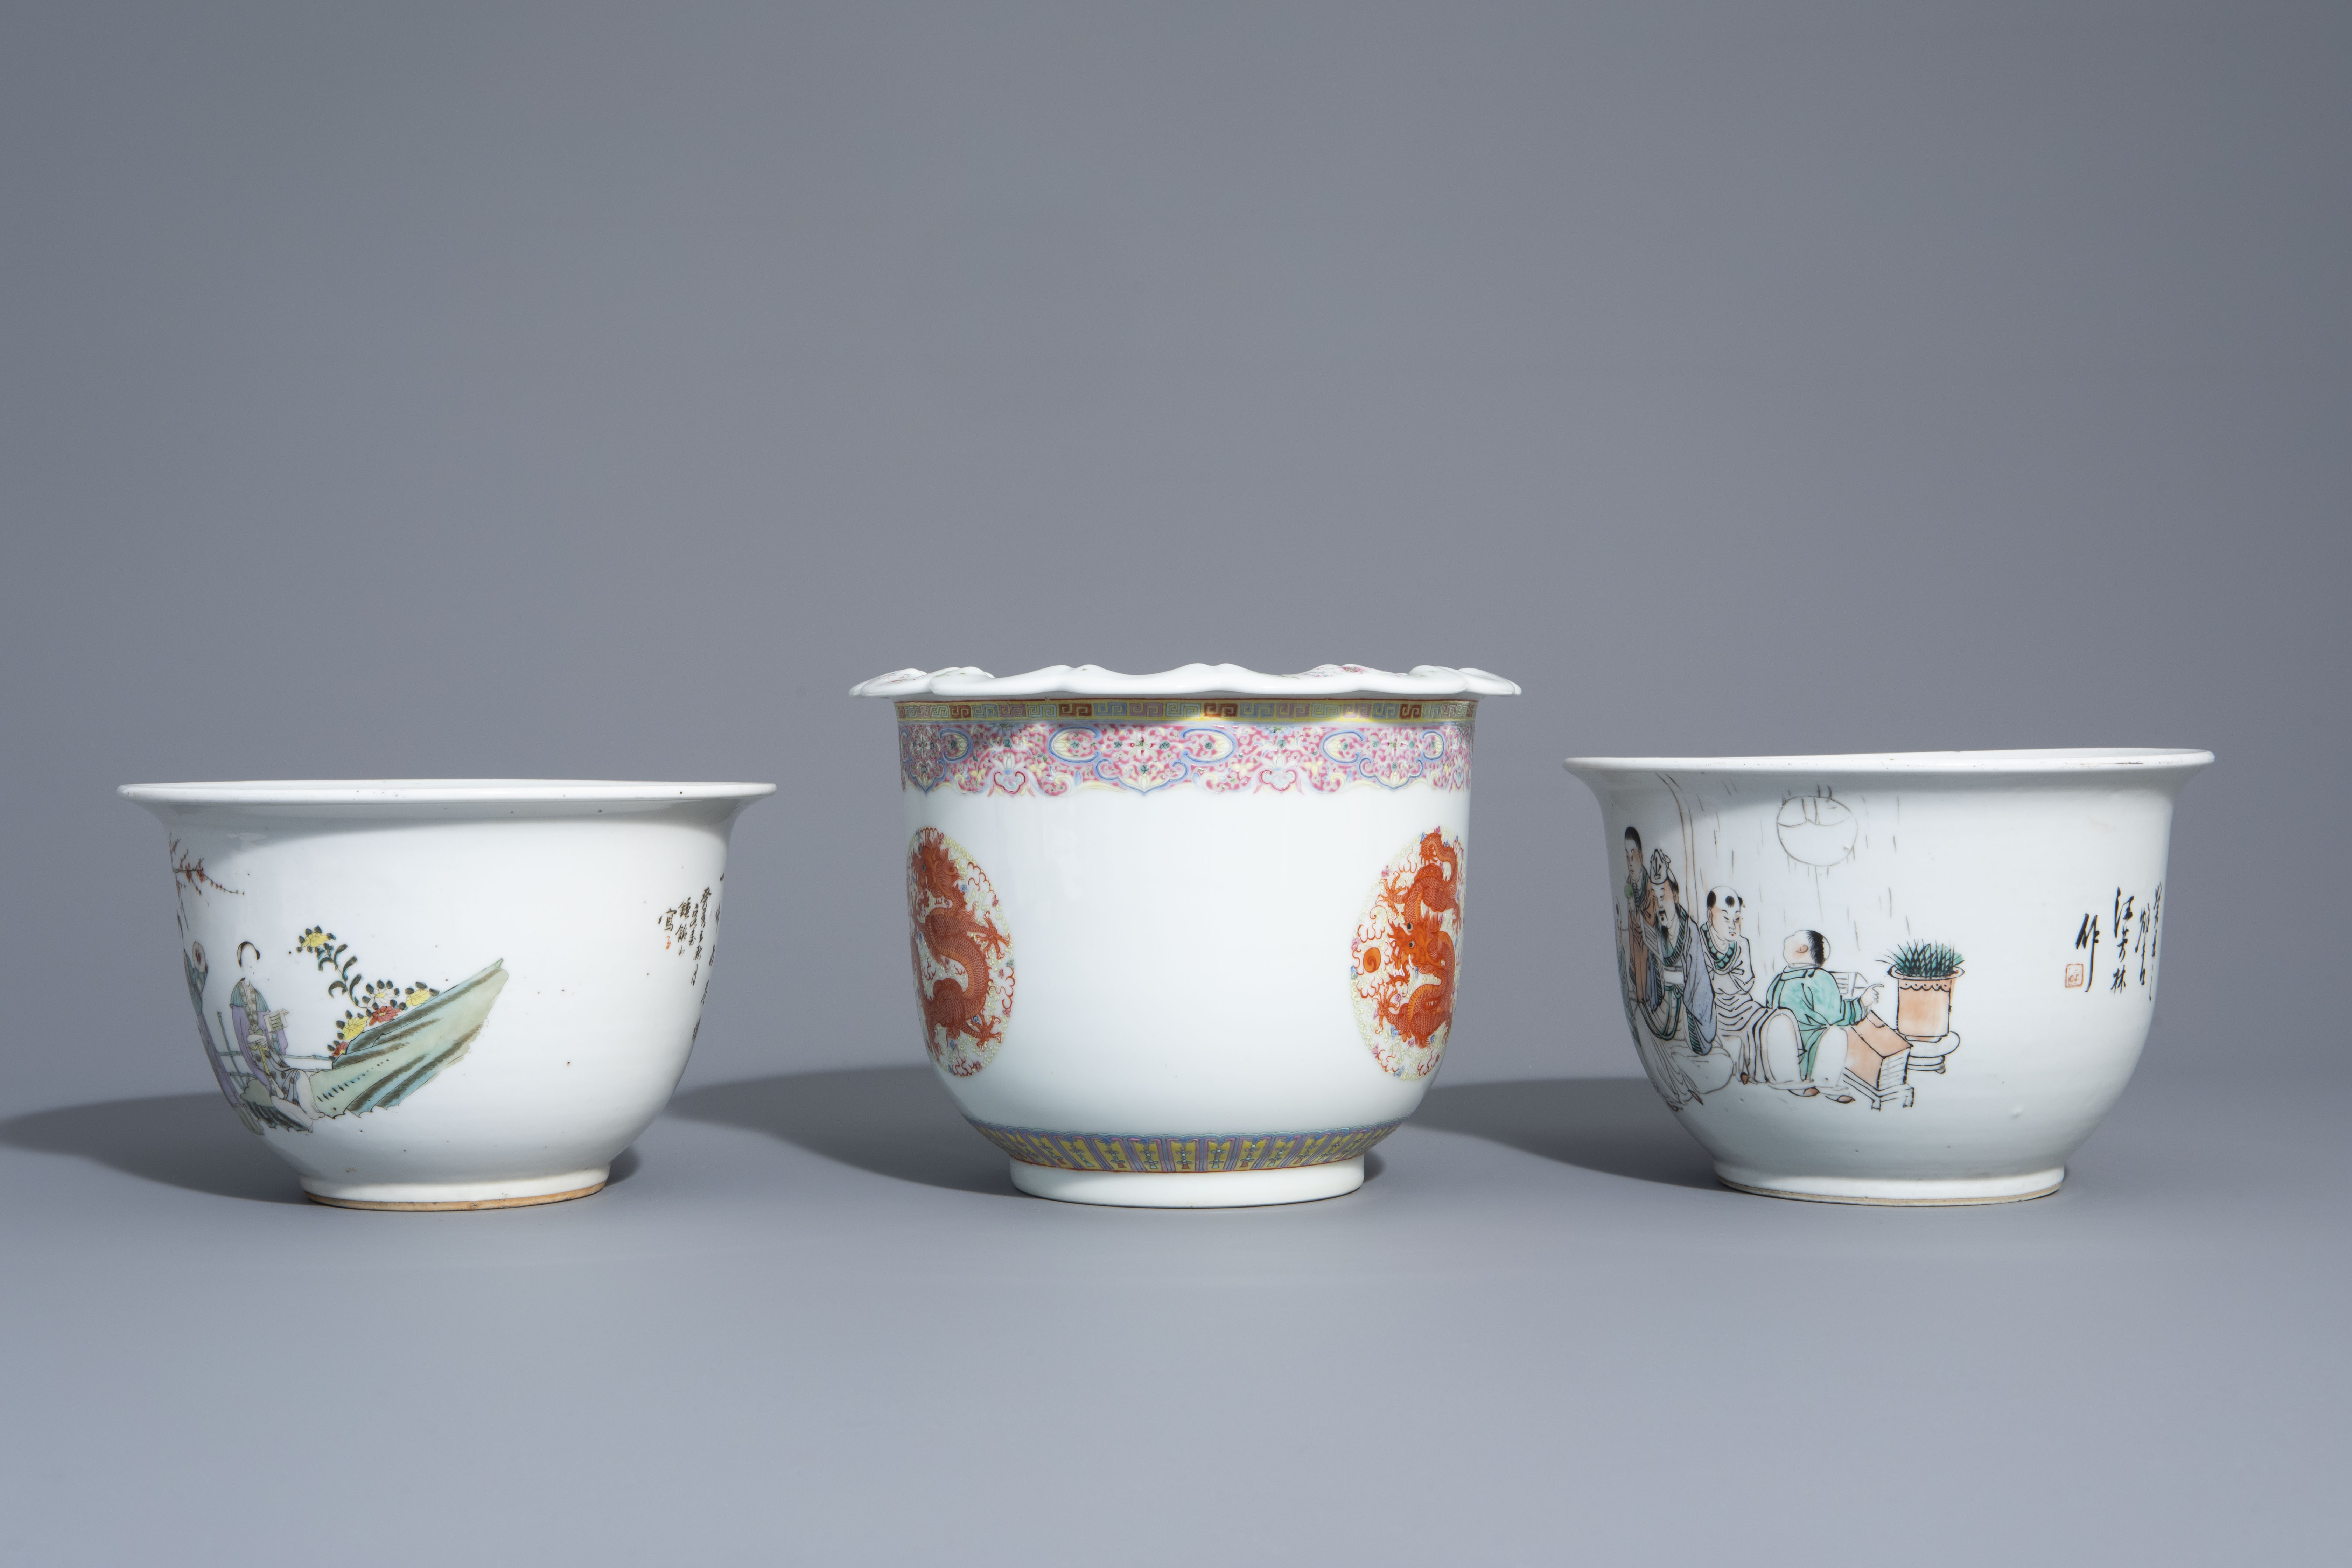 Three Chinese famille rose and qianjiang cai jardinires with different designs, 19th/20th C. - Image 5 of 7